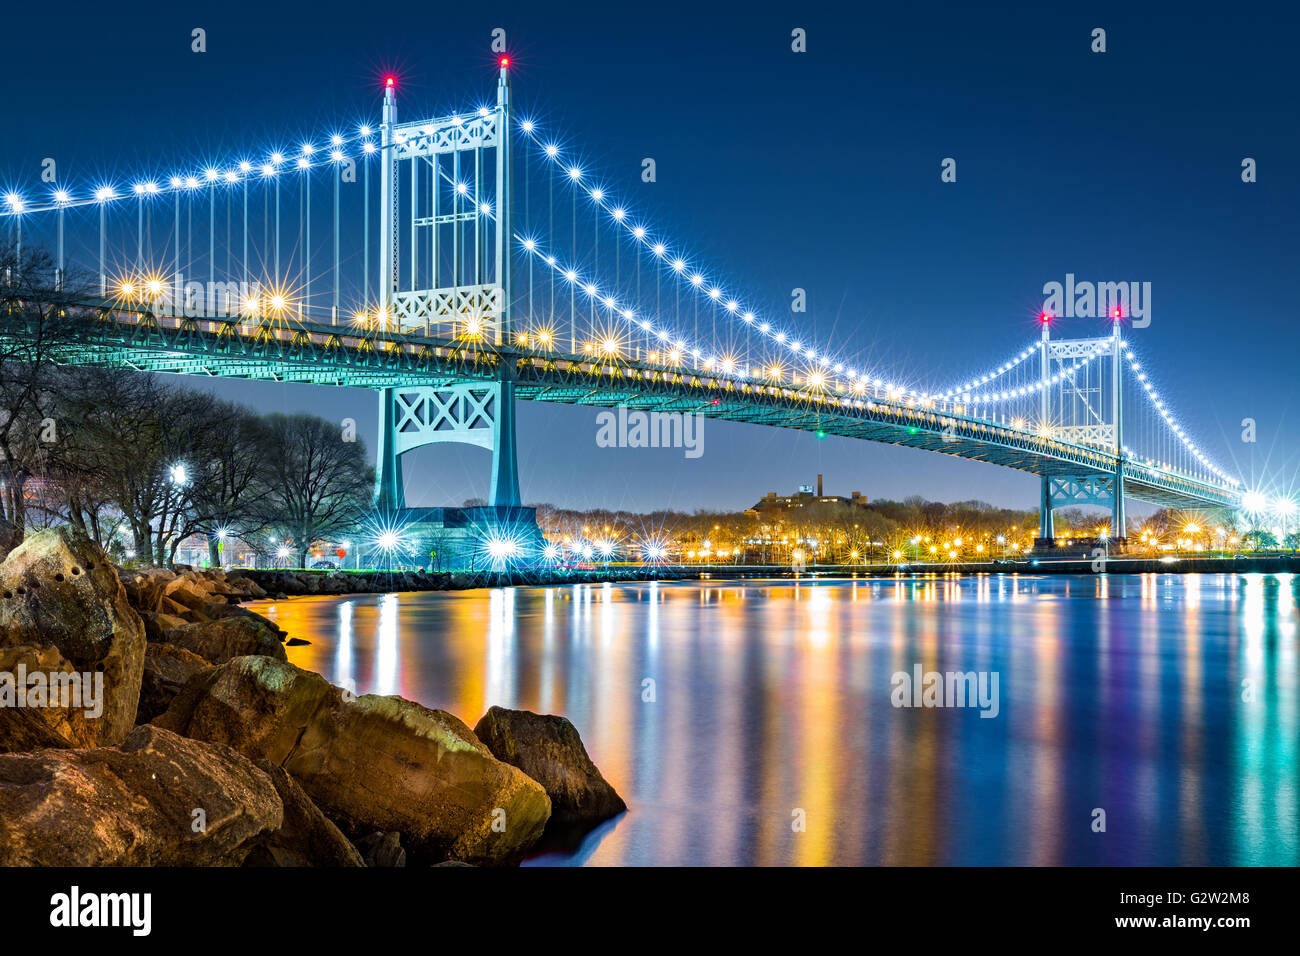 Robert F. Kennedy (aka pont Triboro Bridge) par nuit vu de l'Île Randalls, New York Photo Stock